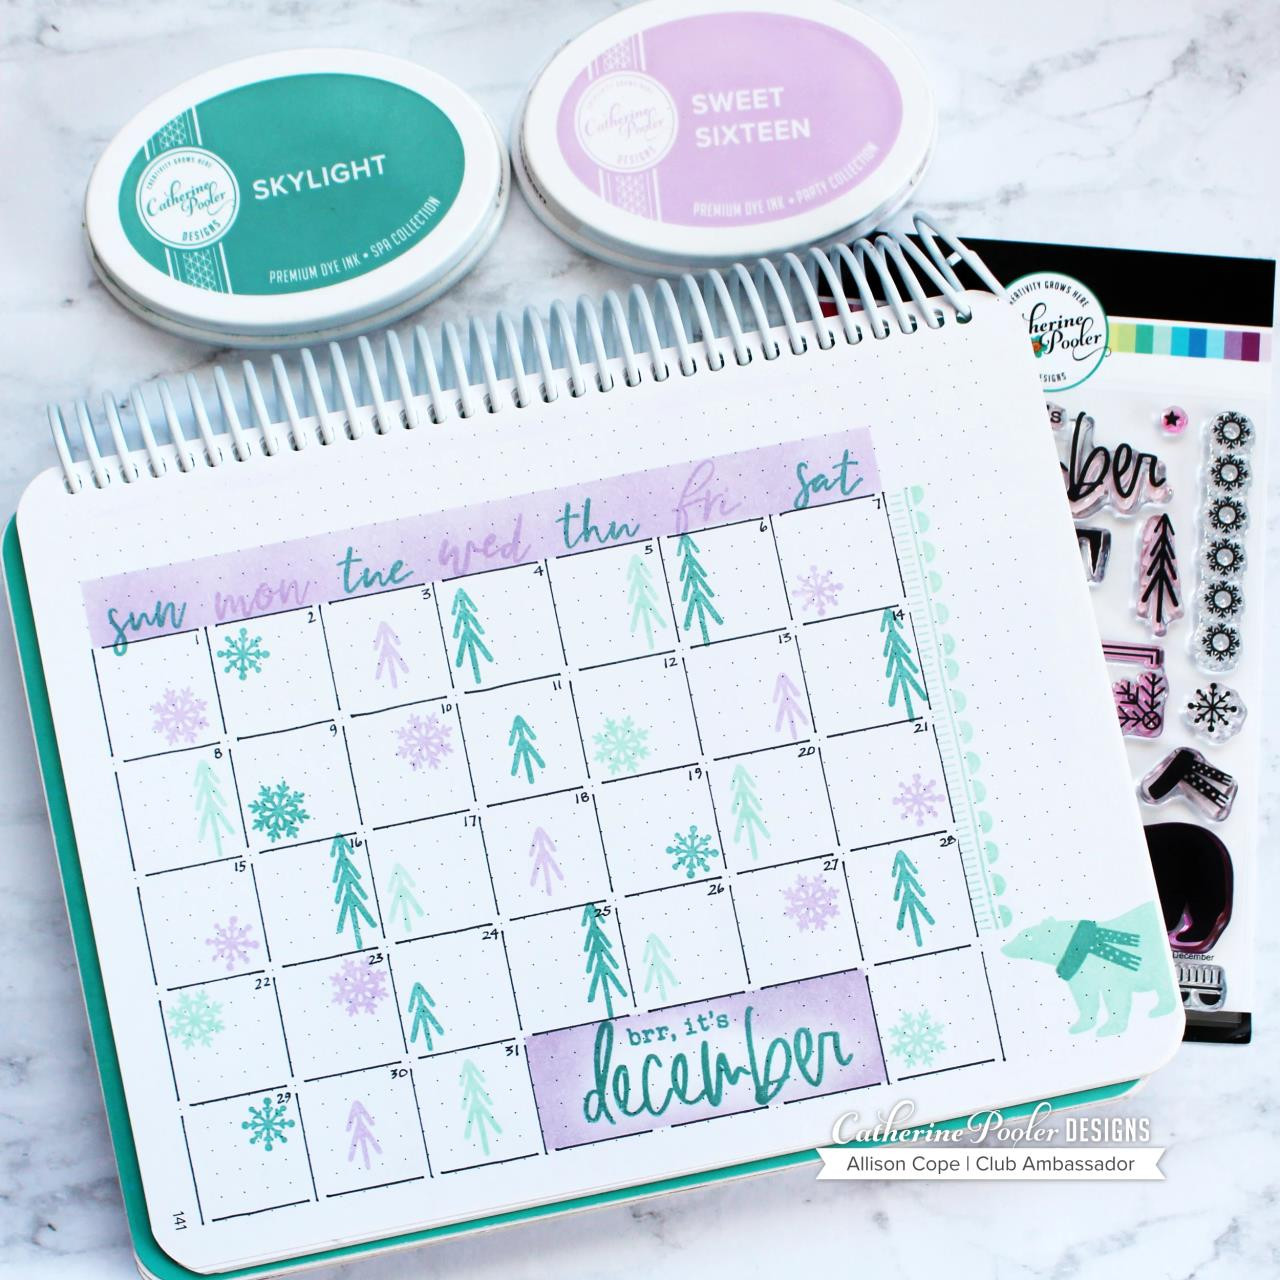 Brr, It's December, Catherine Pooler Clear Stamps - 819447025800